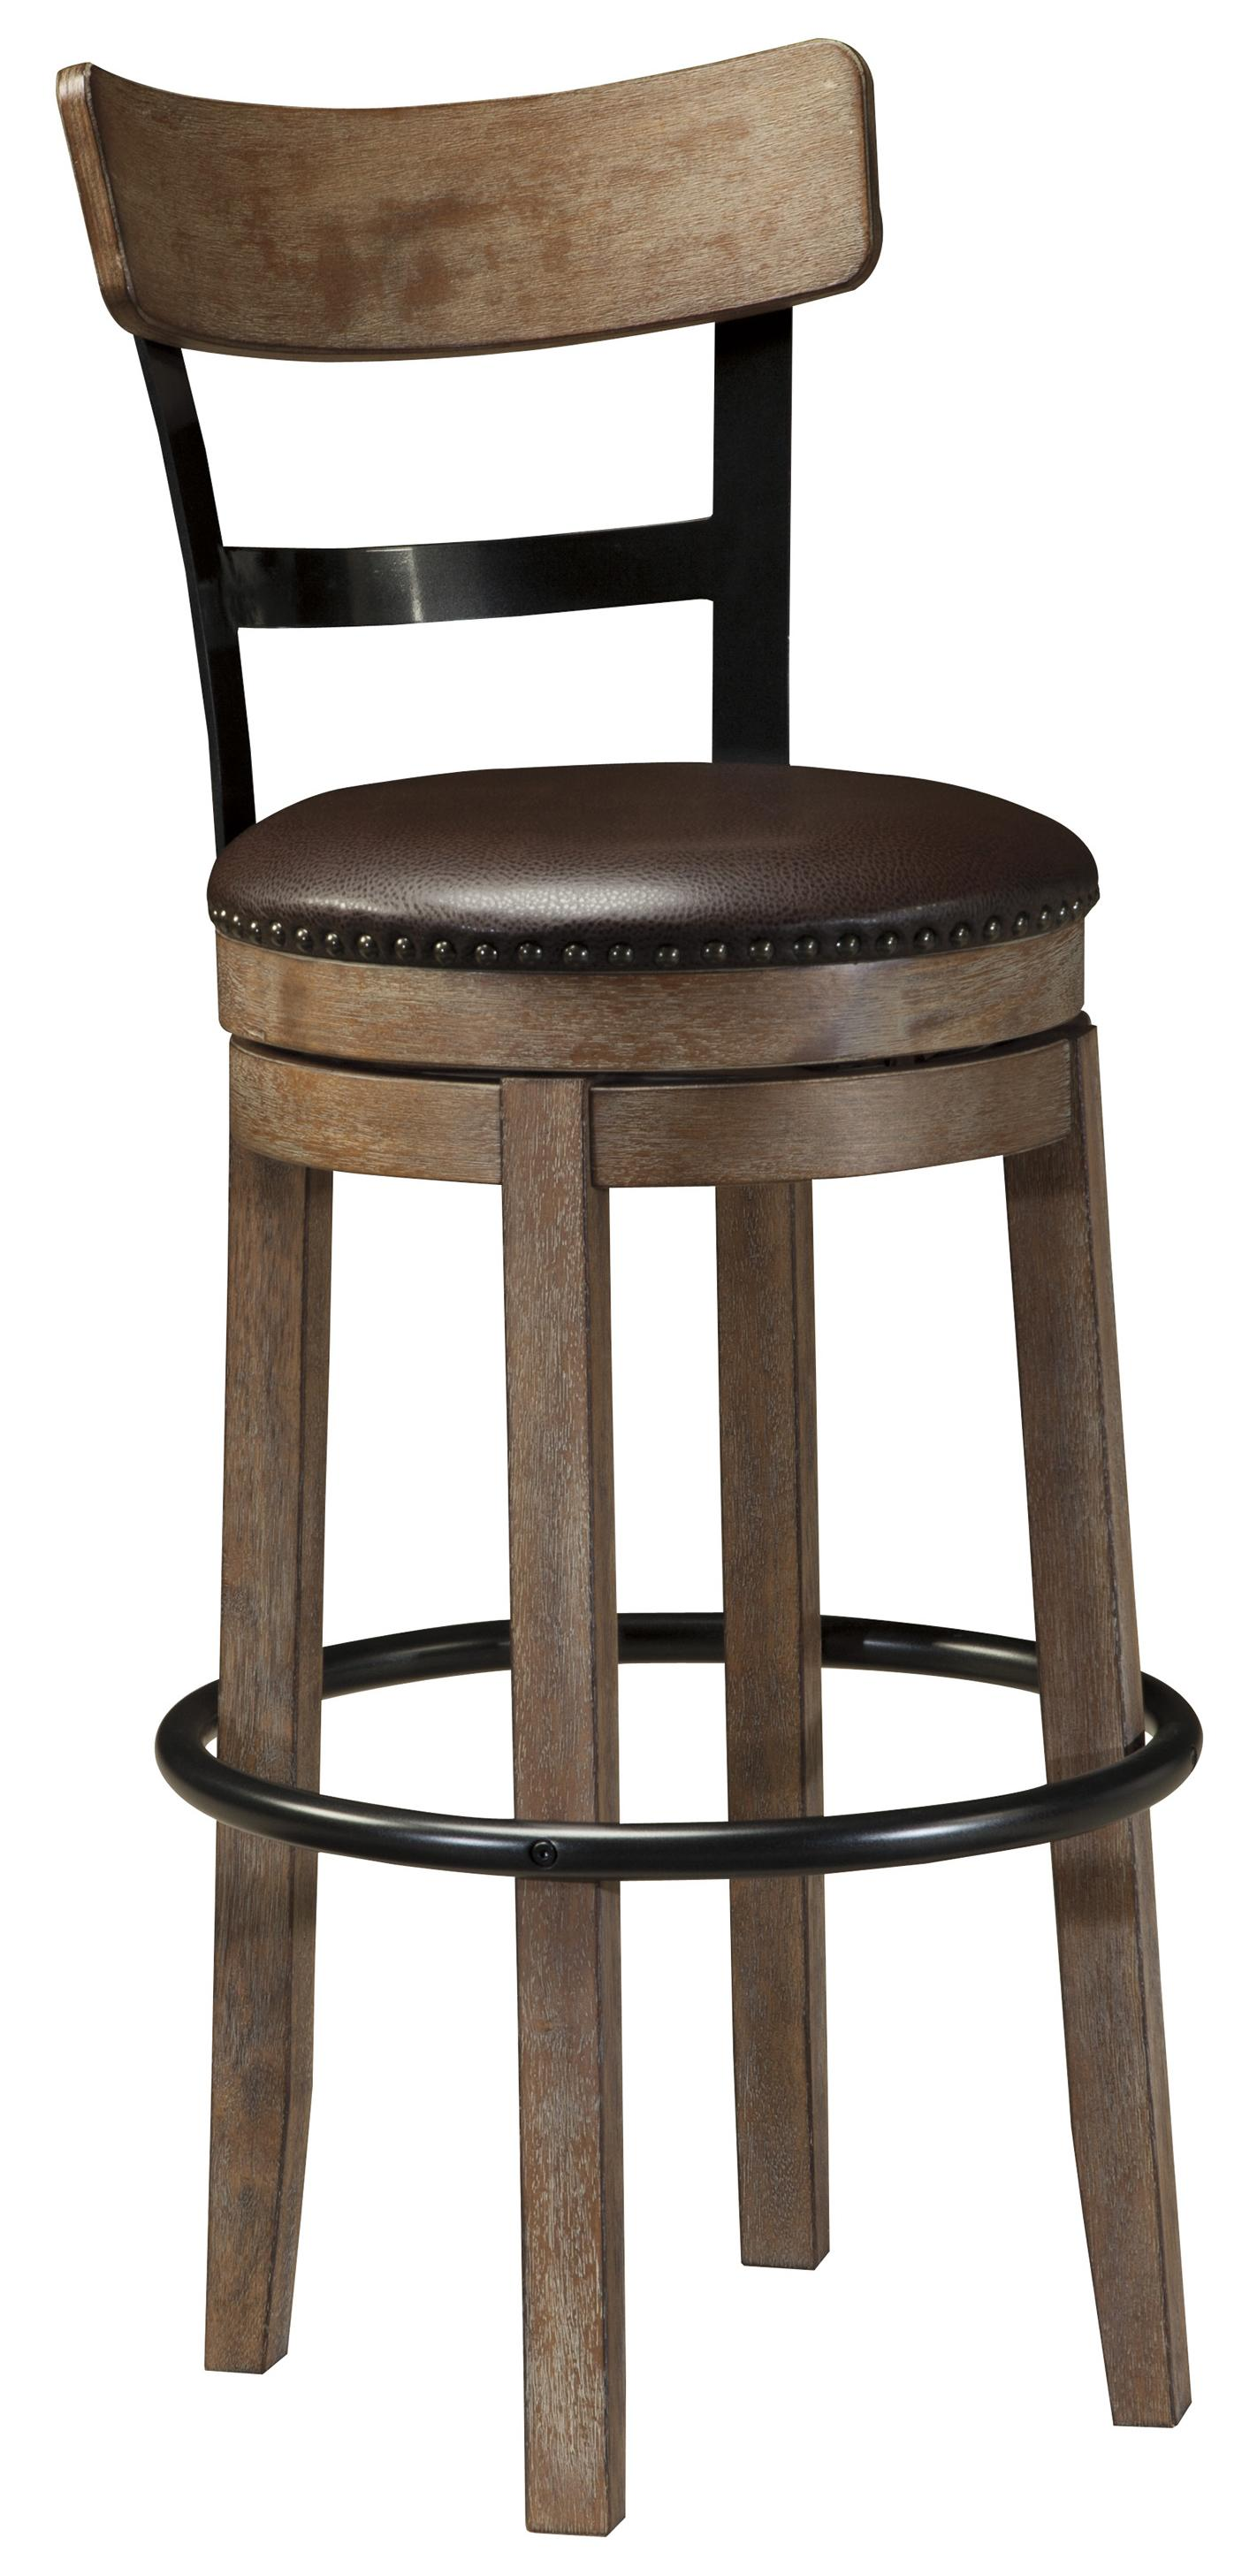 Pinnadel Tall Upholstered Swivel Barstool by Signature Design by Ashley at Catalog Outlet